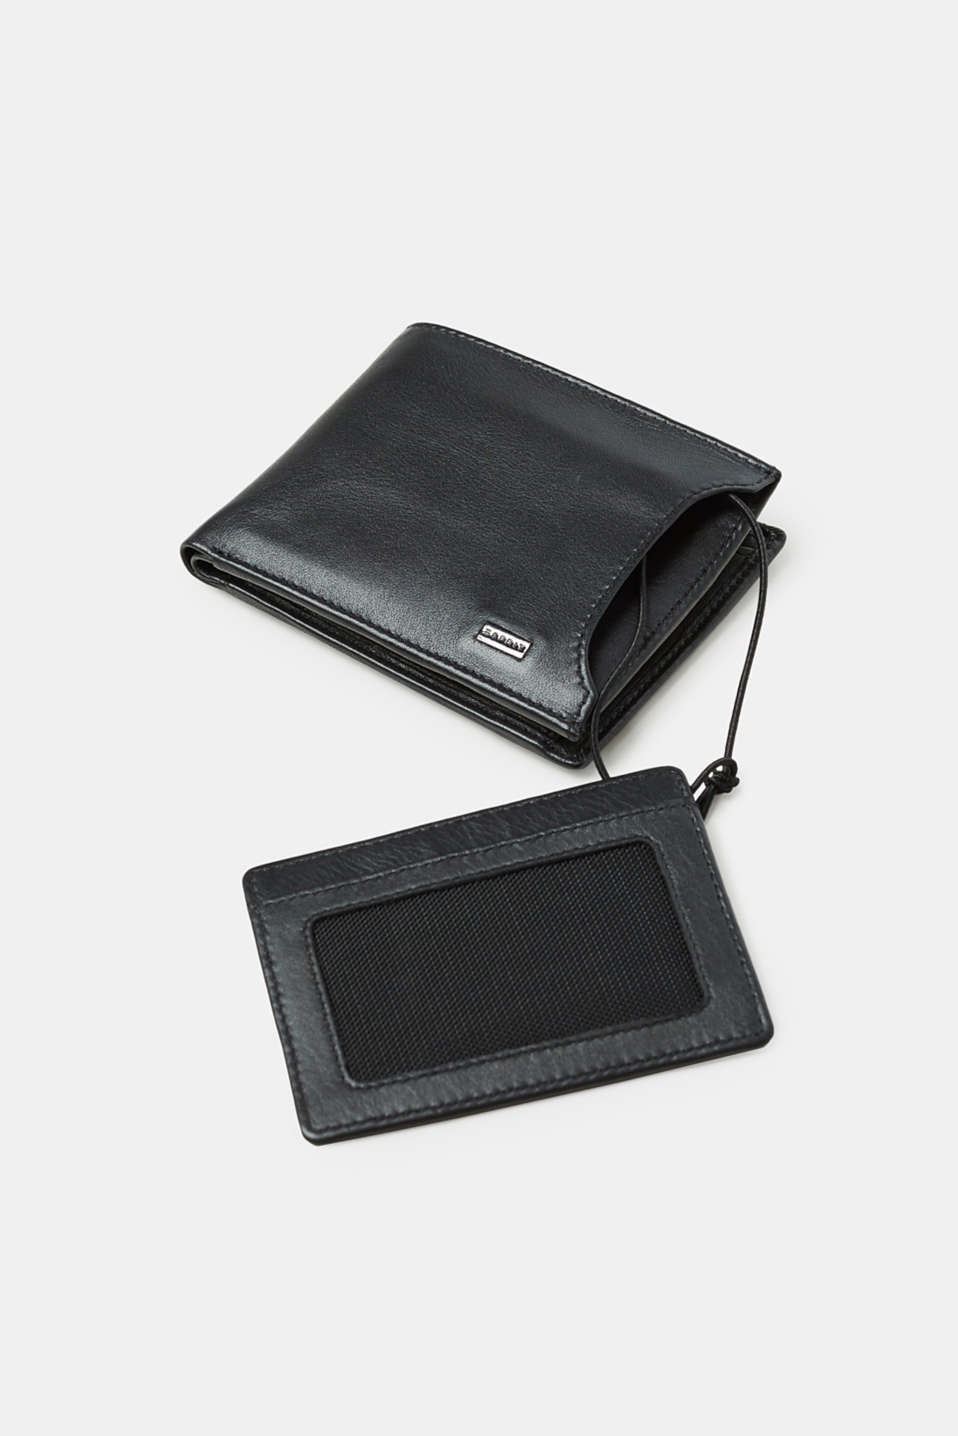 Leather purse with an integrated cardholder